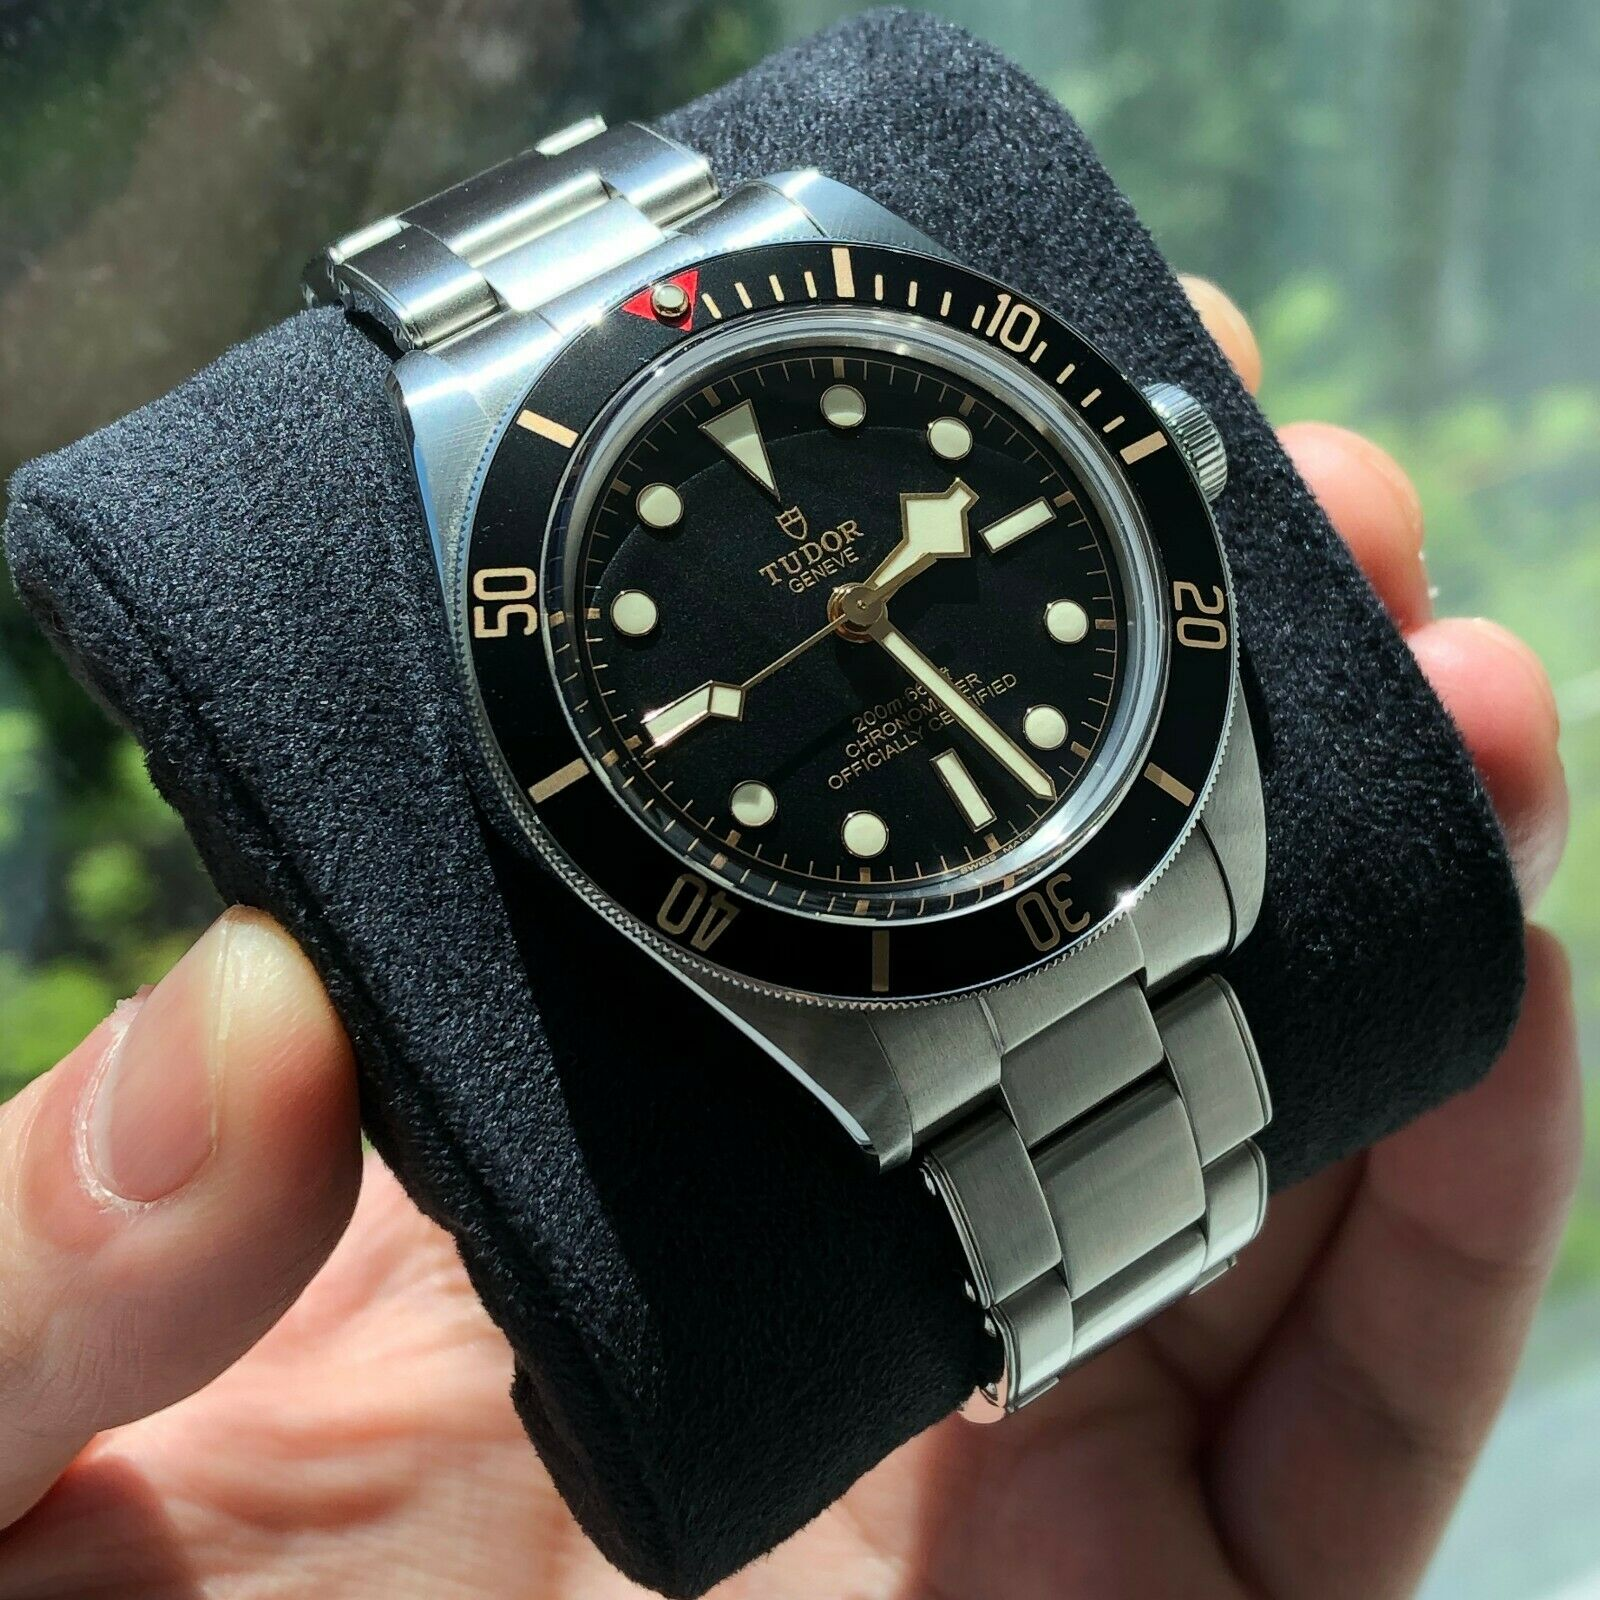 Tudor Black Bay Fifty-Eight 58  79030N Full Set Box Papers and Tag - watch picture 1